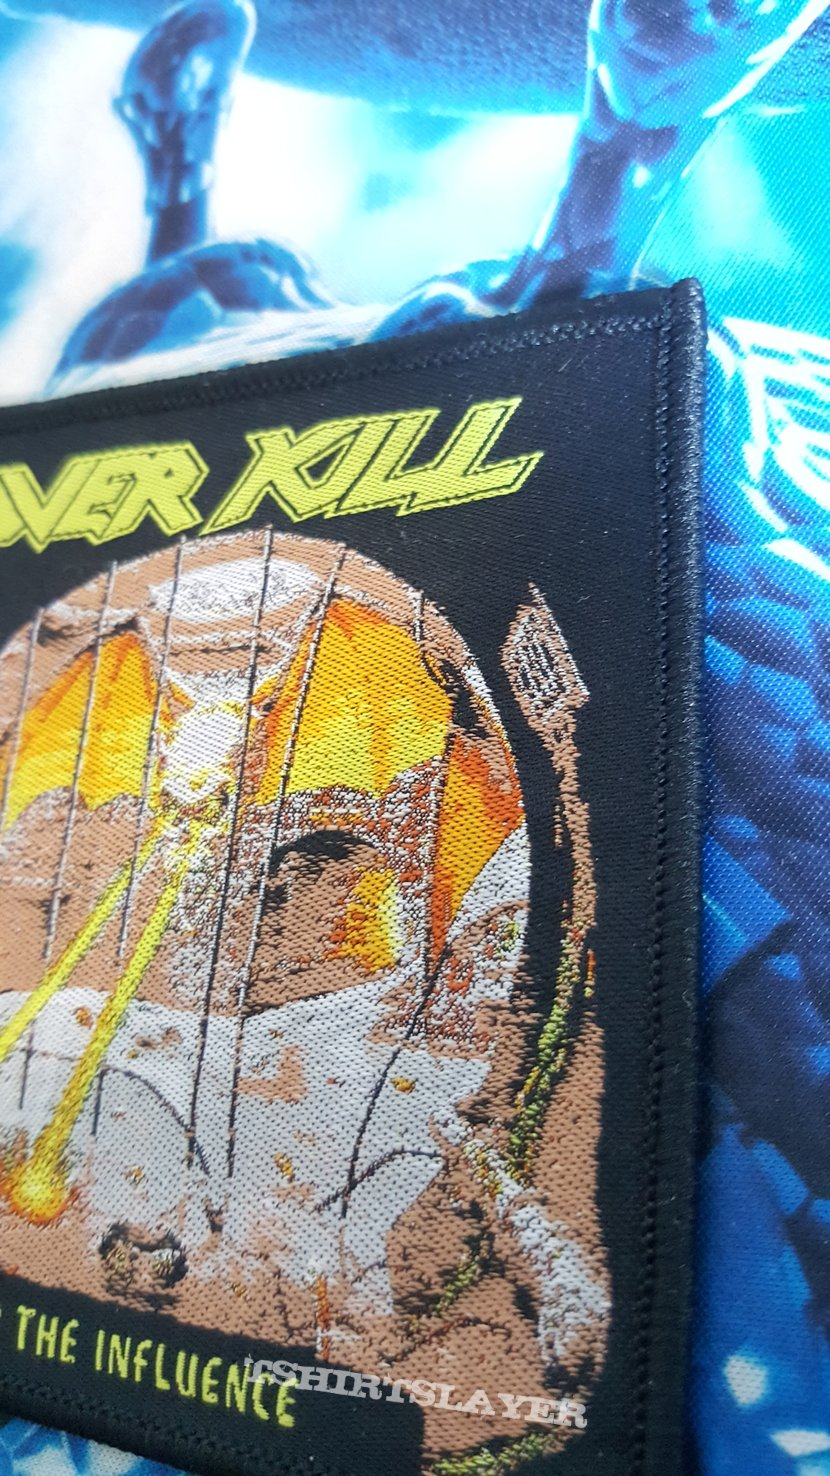 Overkill-Under the influence patch